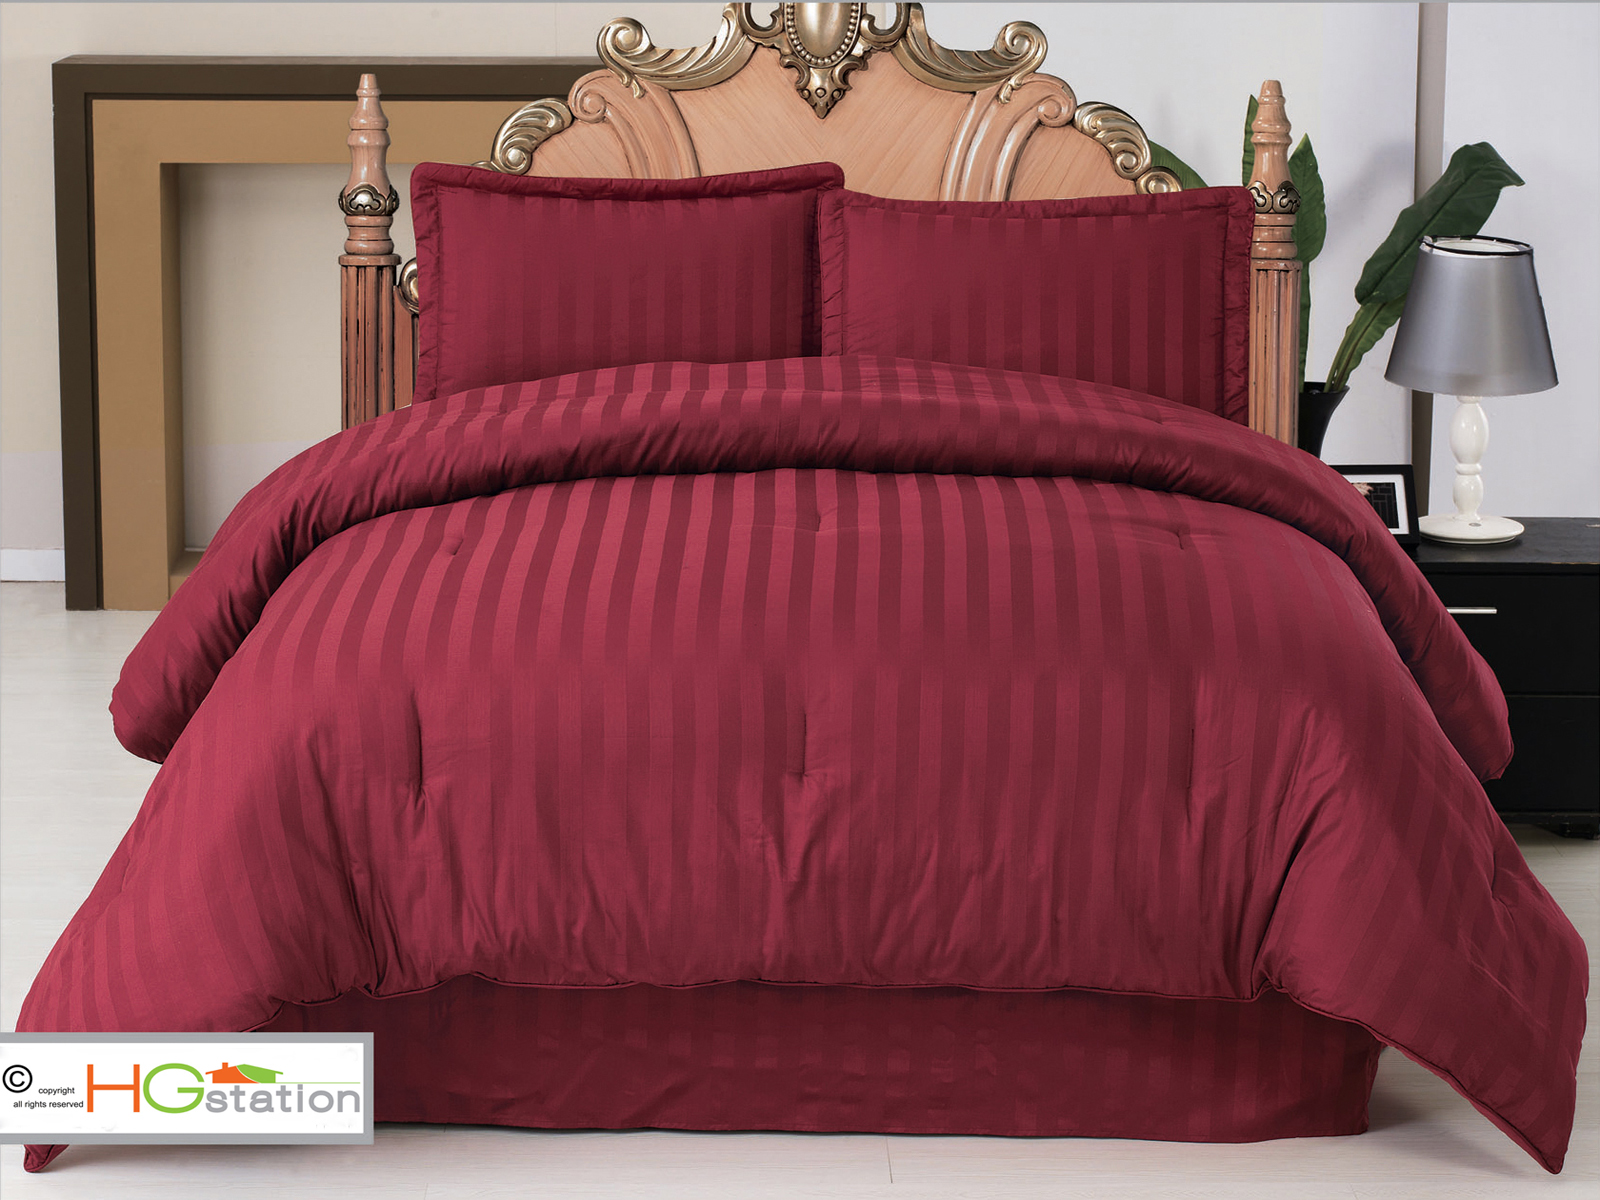 Buy Burgundy Duvet cover sets at private-dev.tk, visit private-dev.tk to shop online for Home and garden Shop online for a wide range of Duvet cover sets at the Argos Bedding shop. Browse all of our fantastic deals and choose to either reserve or buy online. Find it. Get it. Argos it.